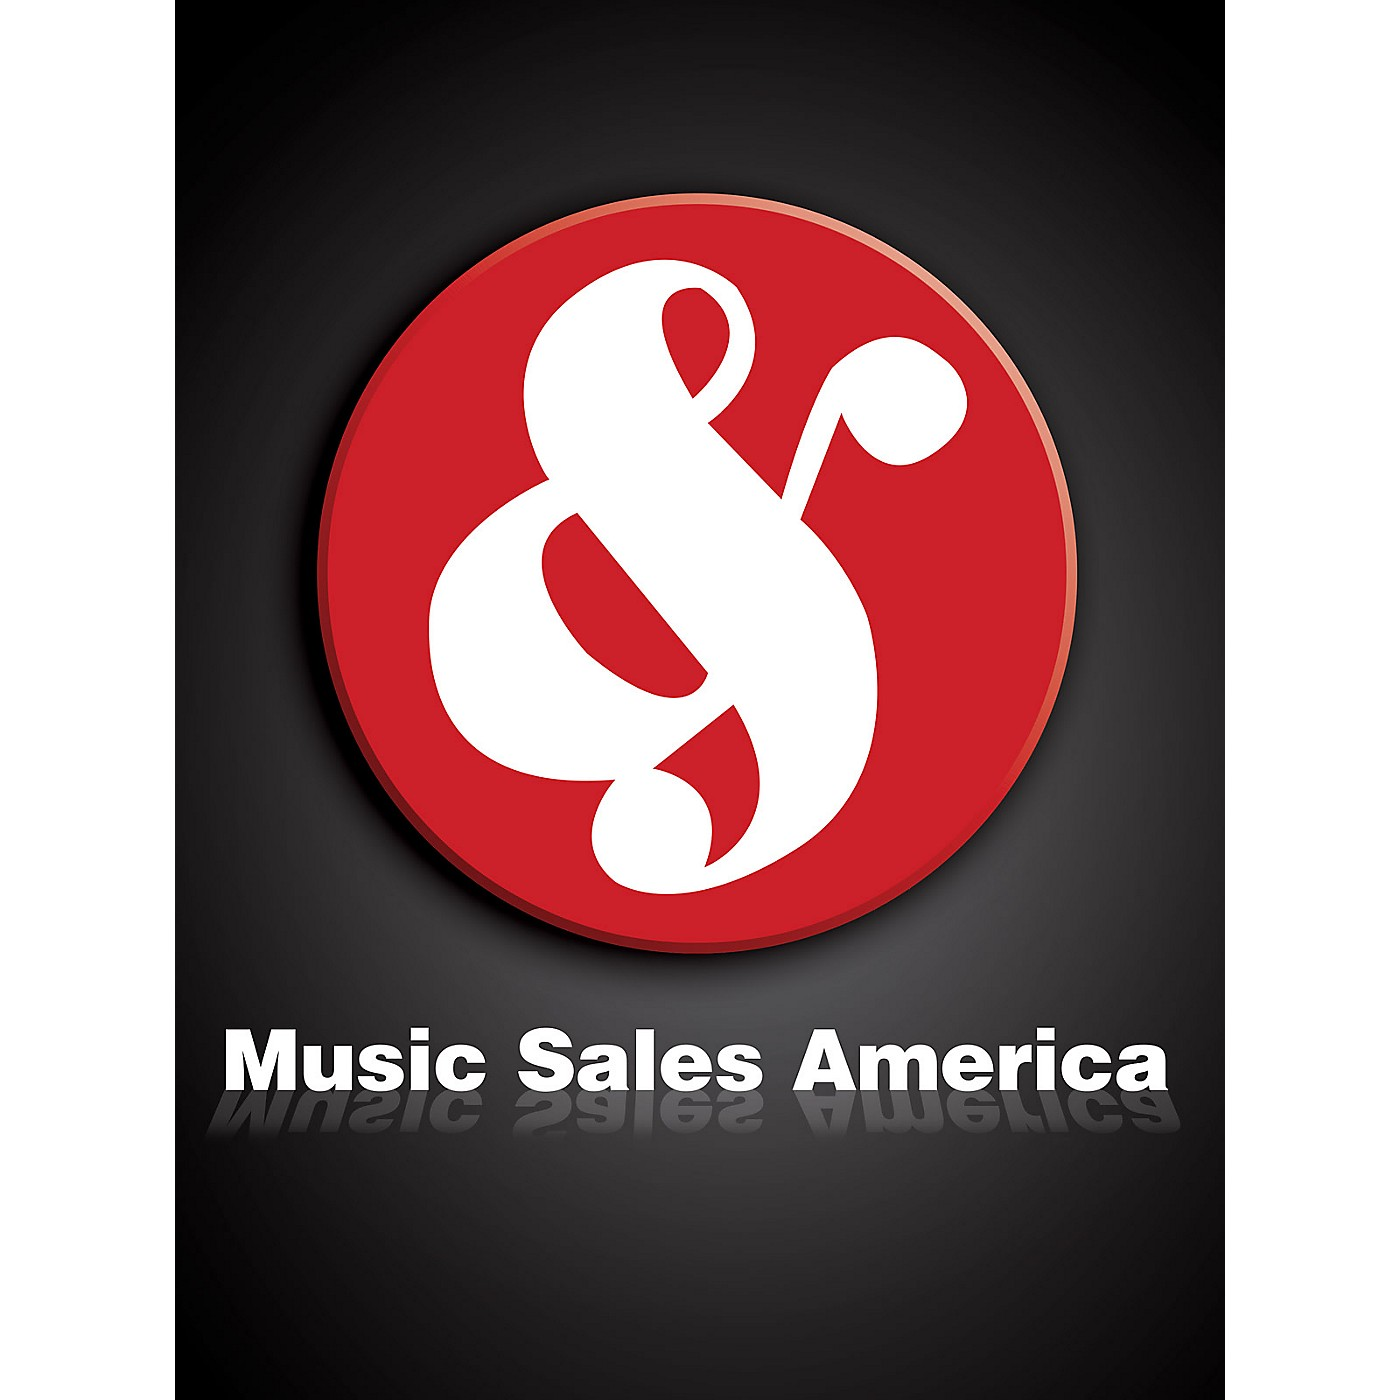 Music Sales The Classic Piano Course Book 3: Making Music Music Sales America Series Softcover by Carol Barratt thumbnail